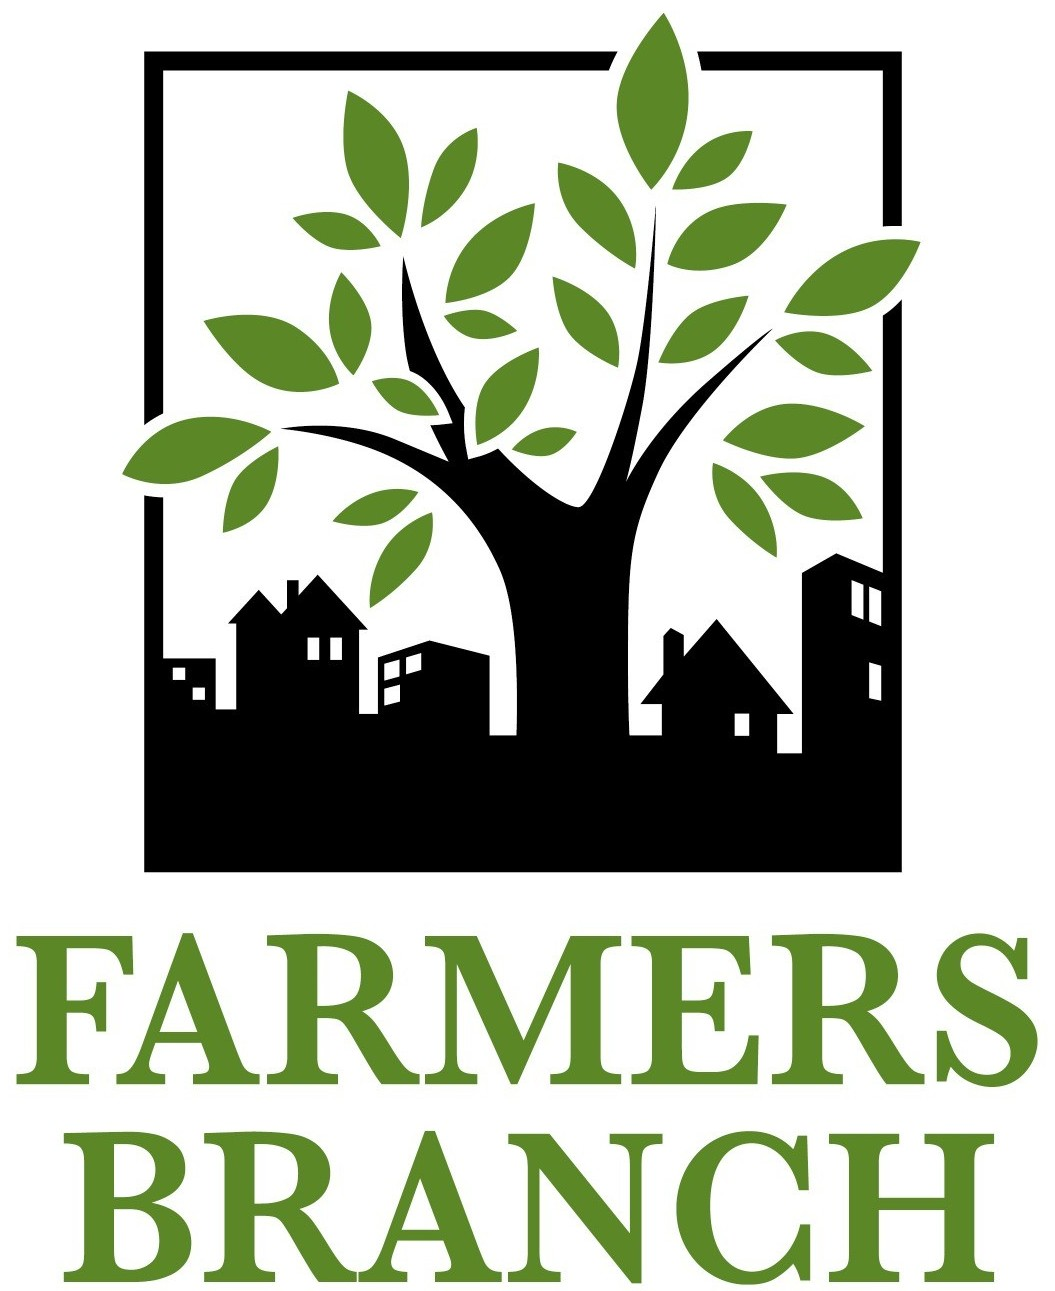 City of Farmers Branch